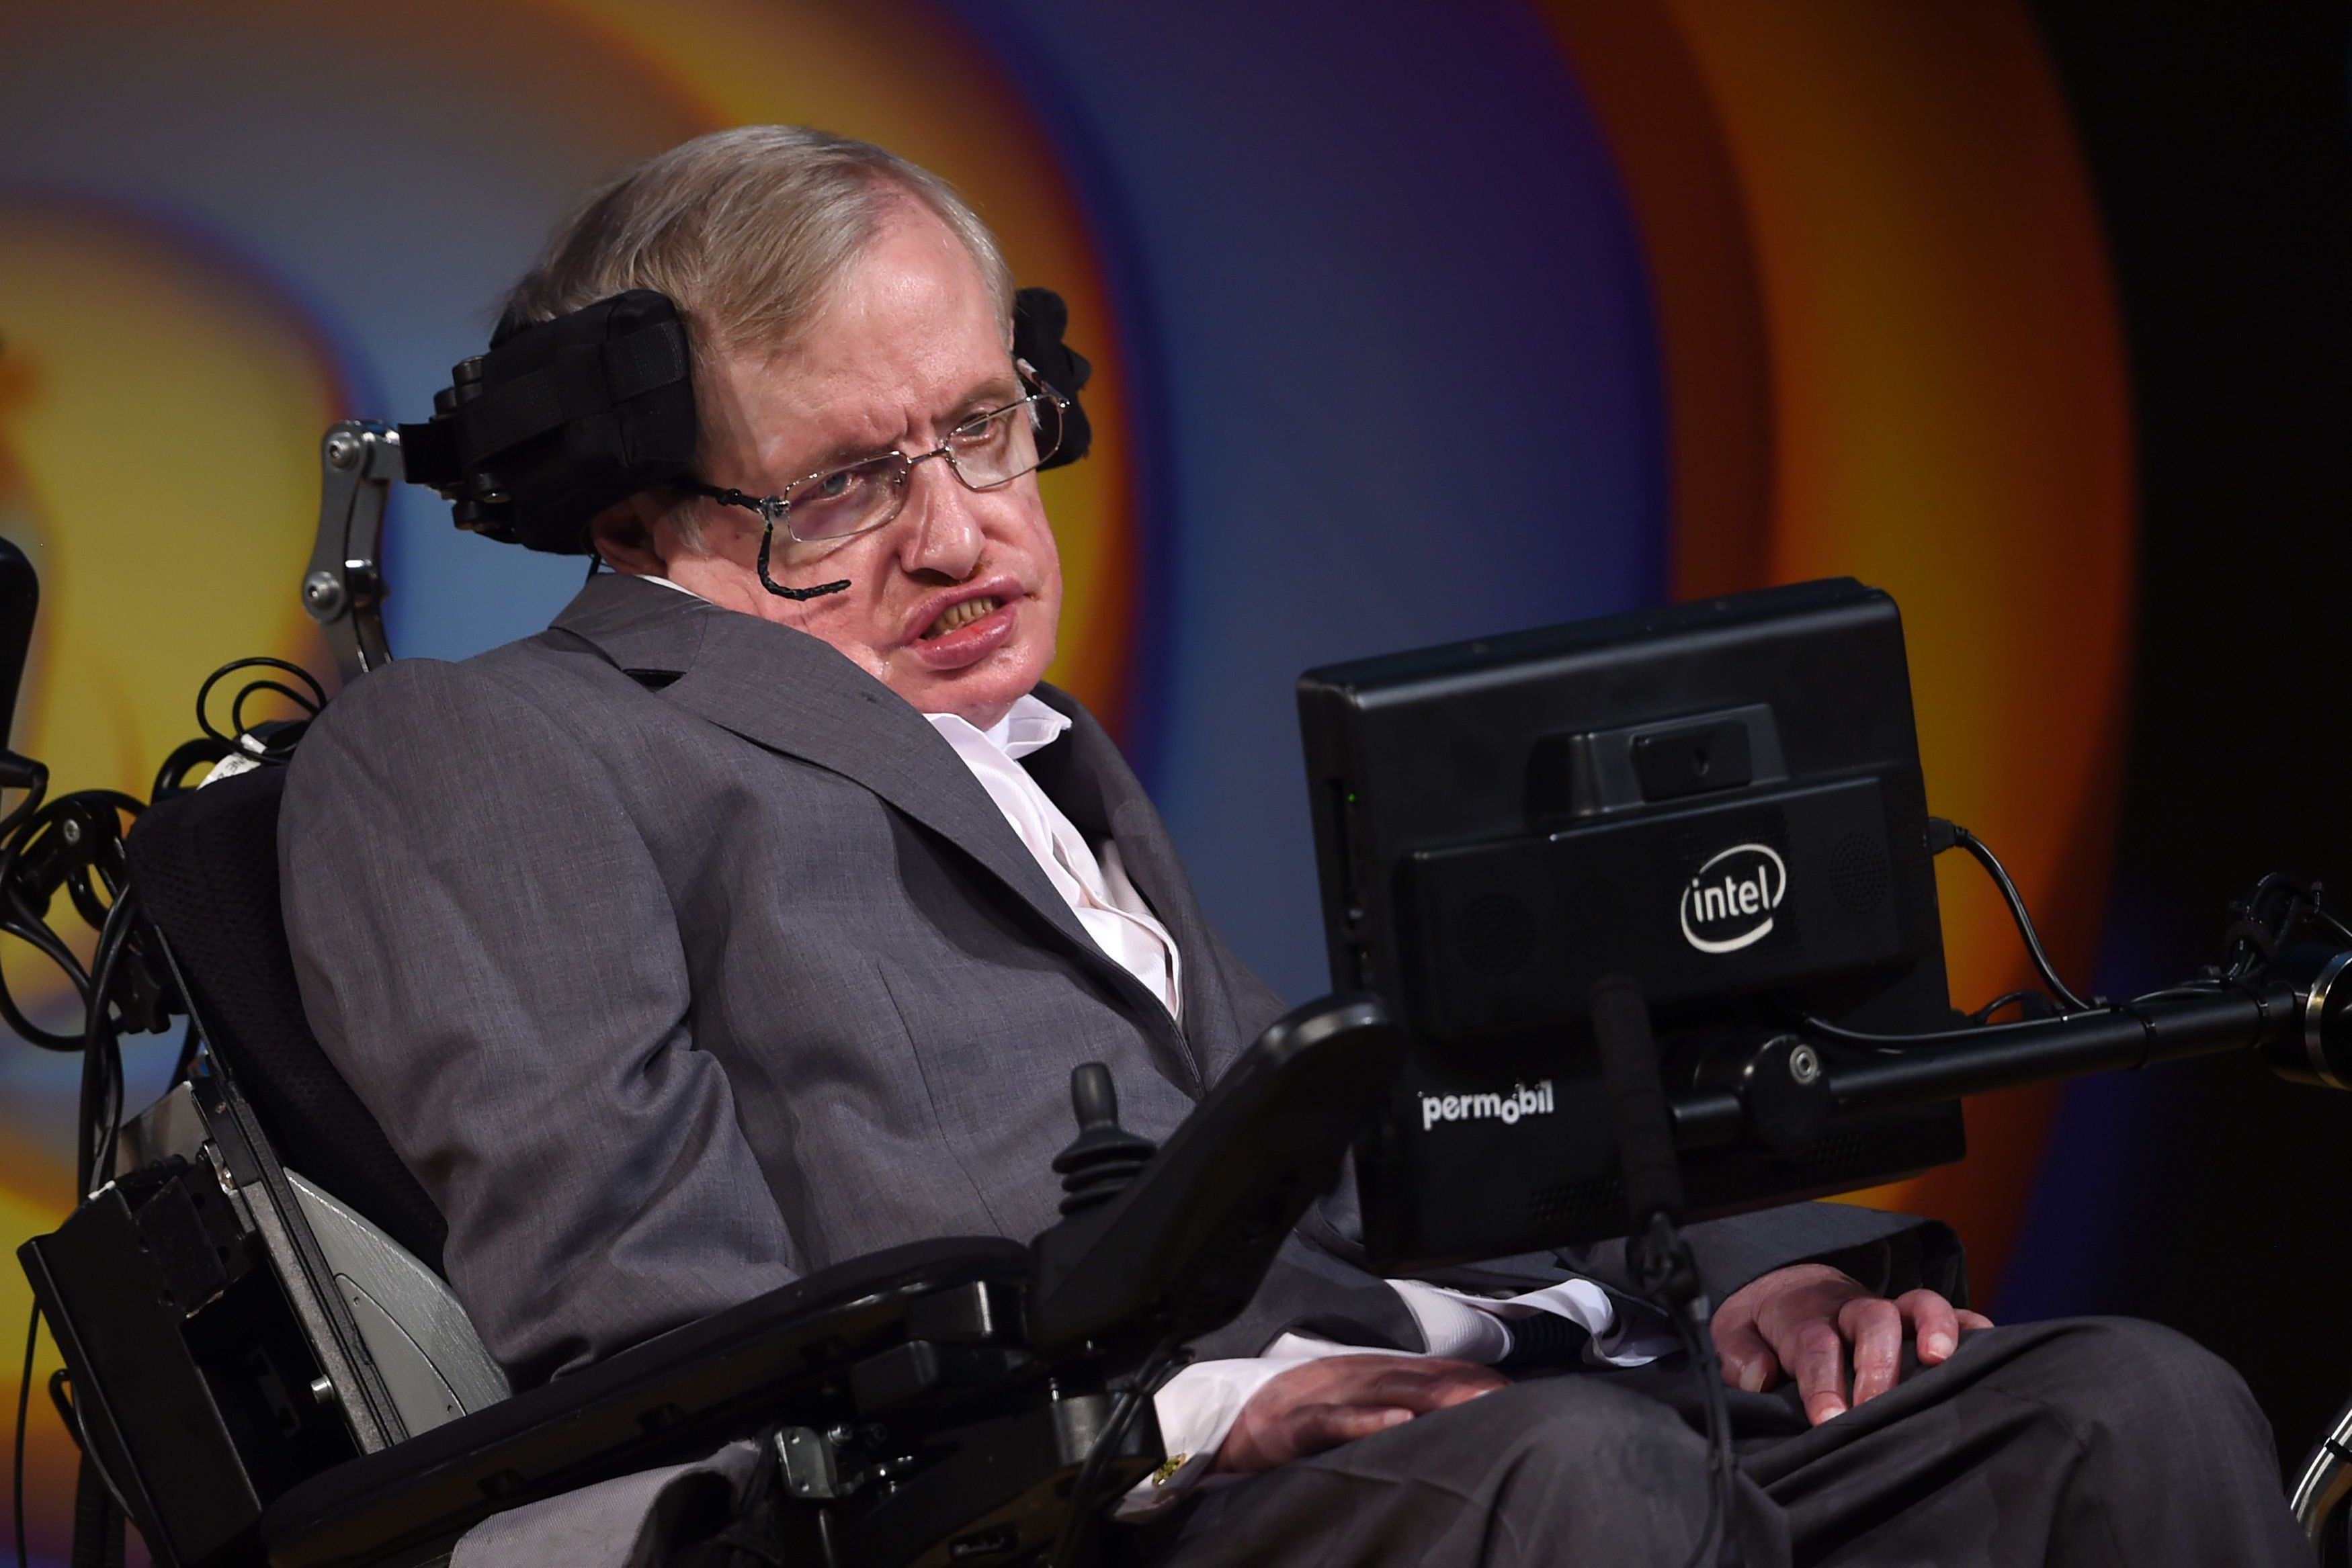 Stephen Hawking is joining legal action against Jeremy Hunt over the introduction of